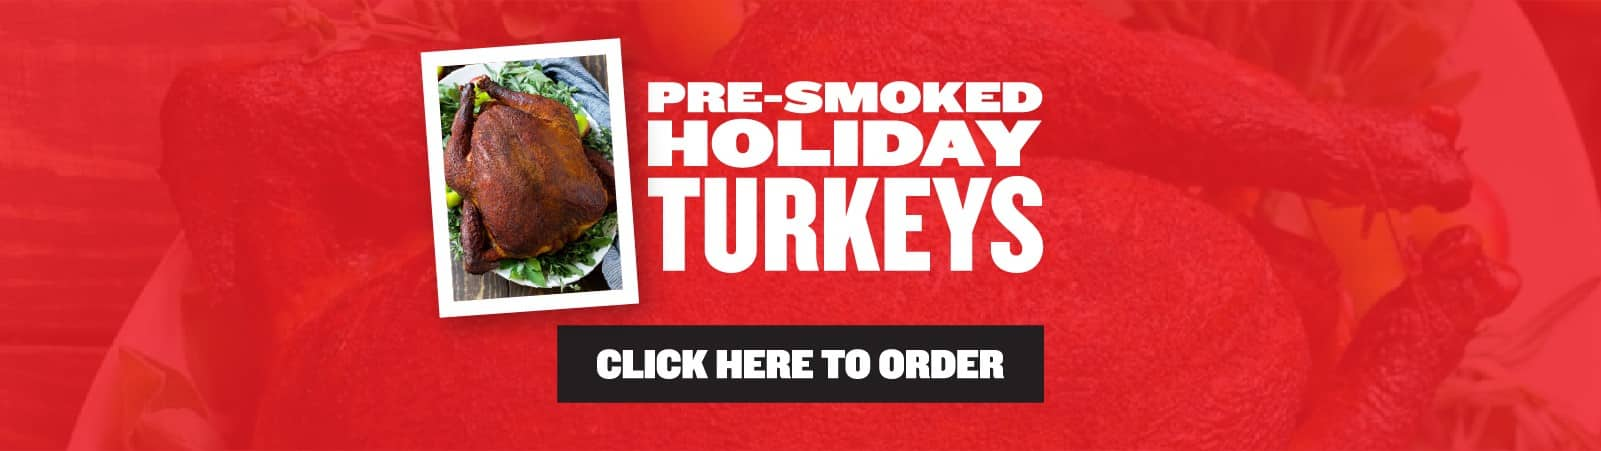 Pre-Smoked Holiday Turkey sale